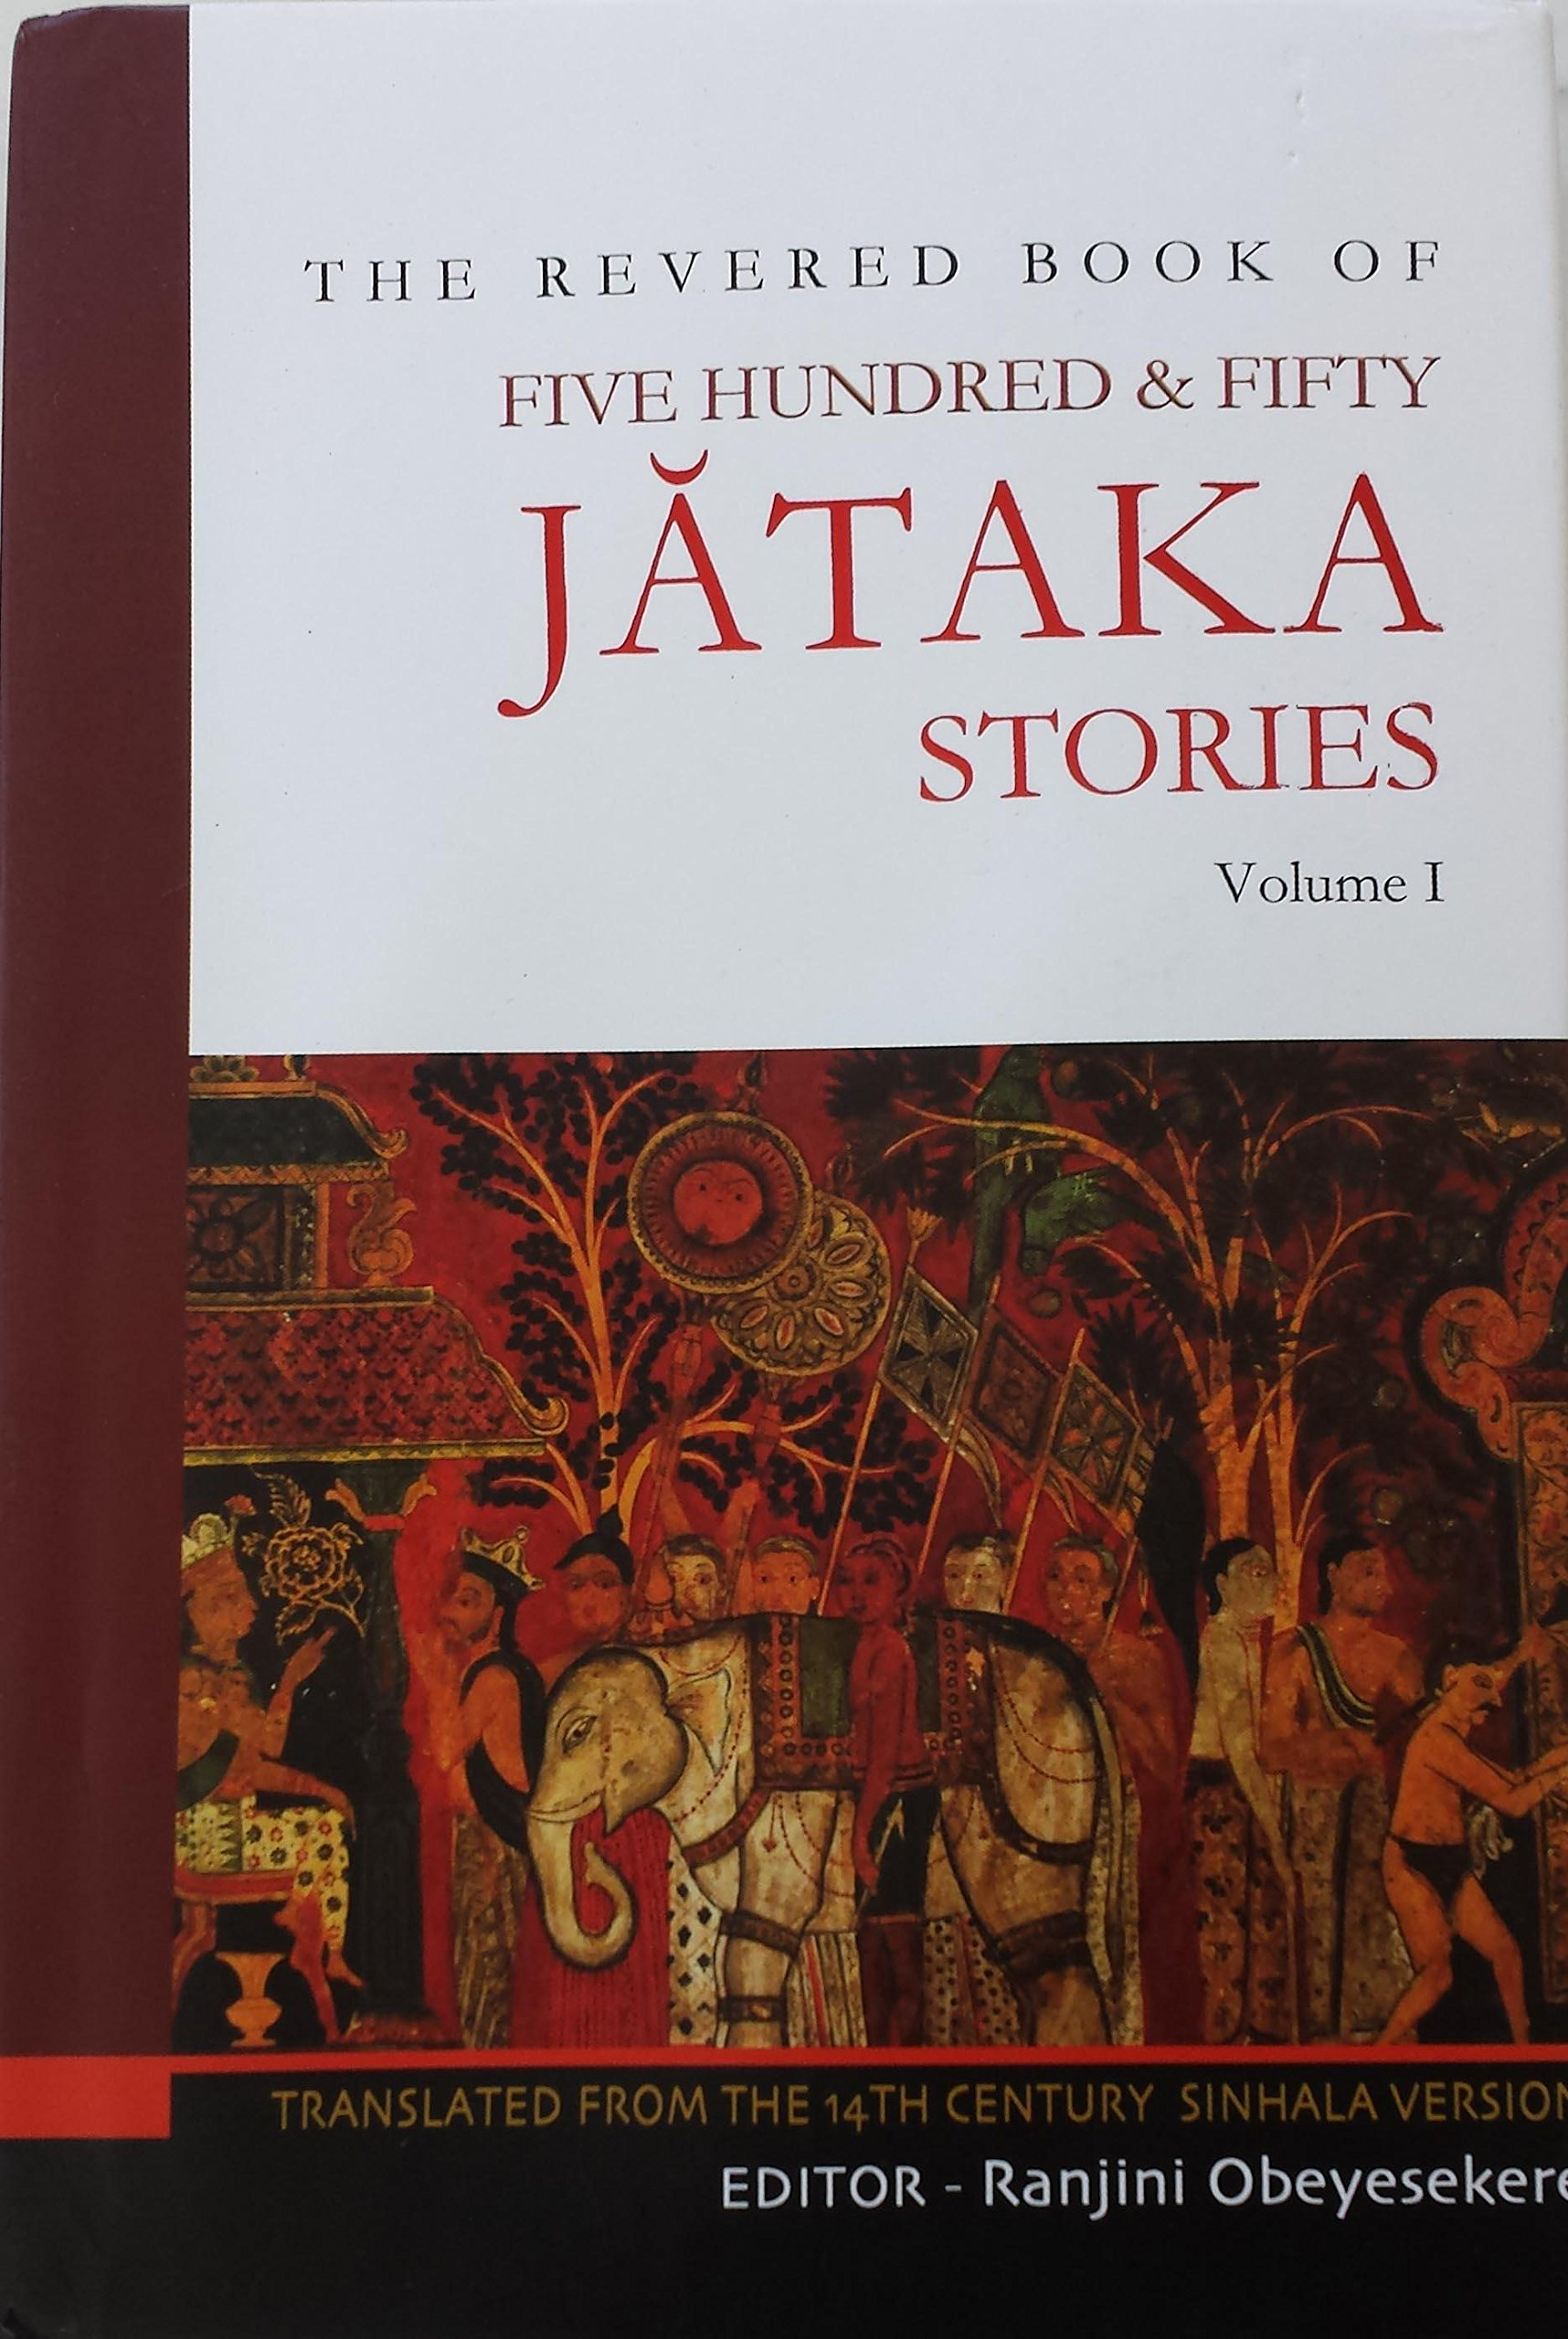 The Revered Book of Five Hundred & Fifty Jataka Stories